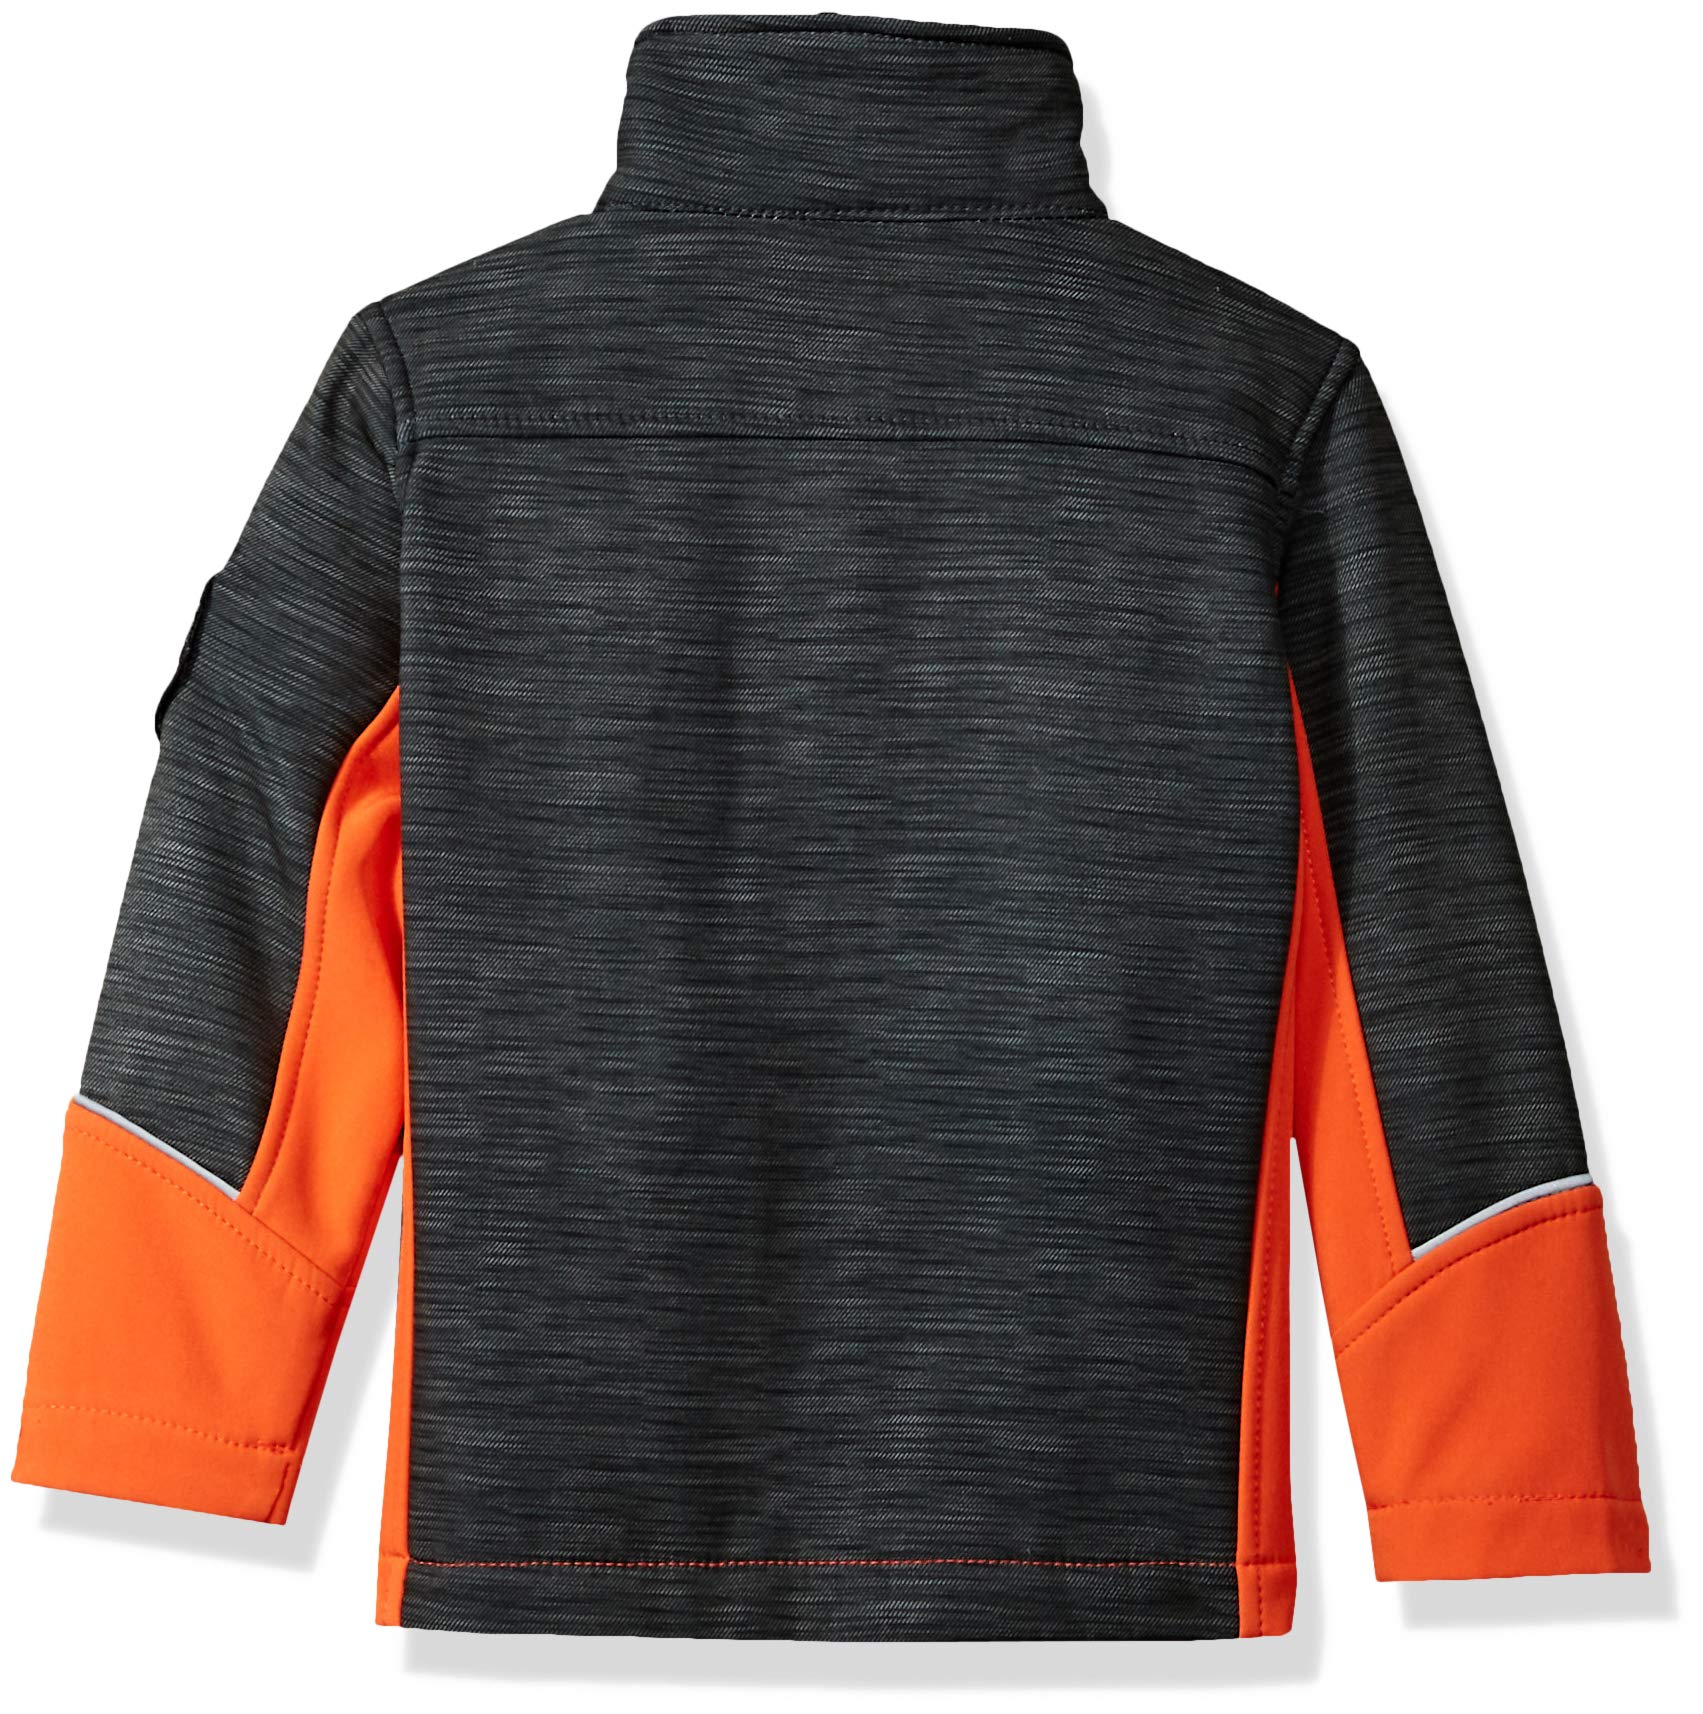 32 DEGREES Weatherproof Weatherproof Little Boys Outerwear Jacket (More Styles Available), Zip Pockets Orange, 4 by 32 DEGREES (Image #2)